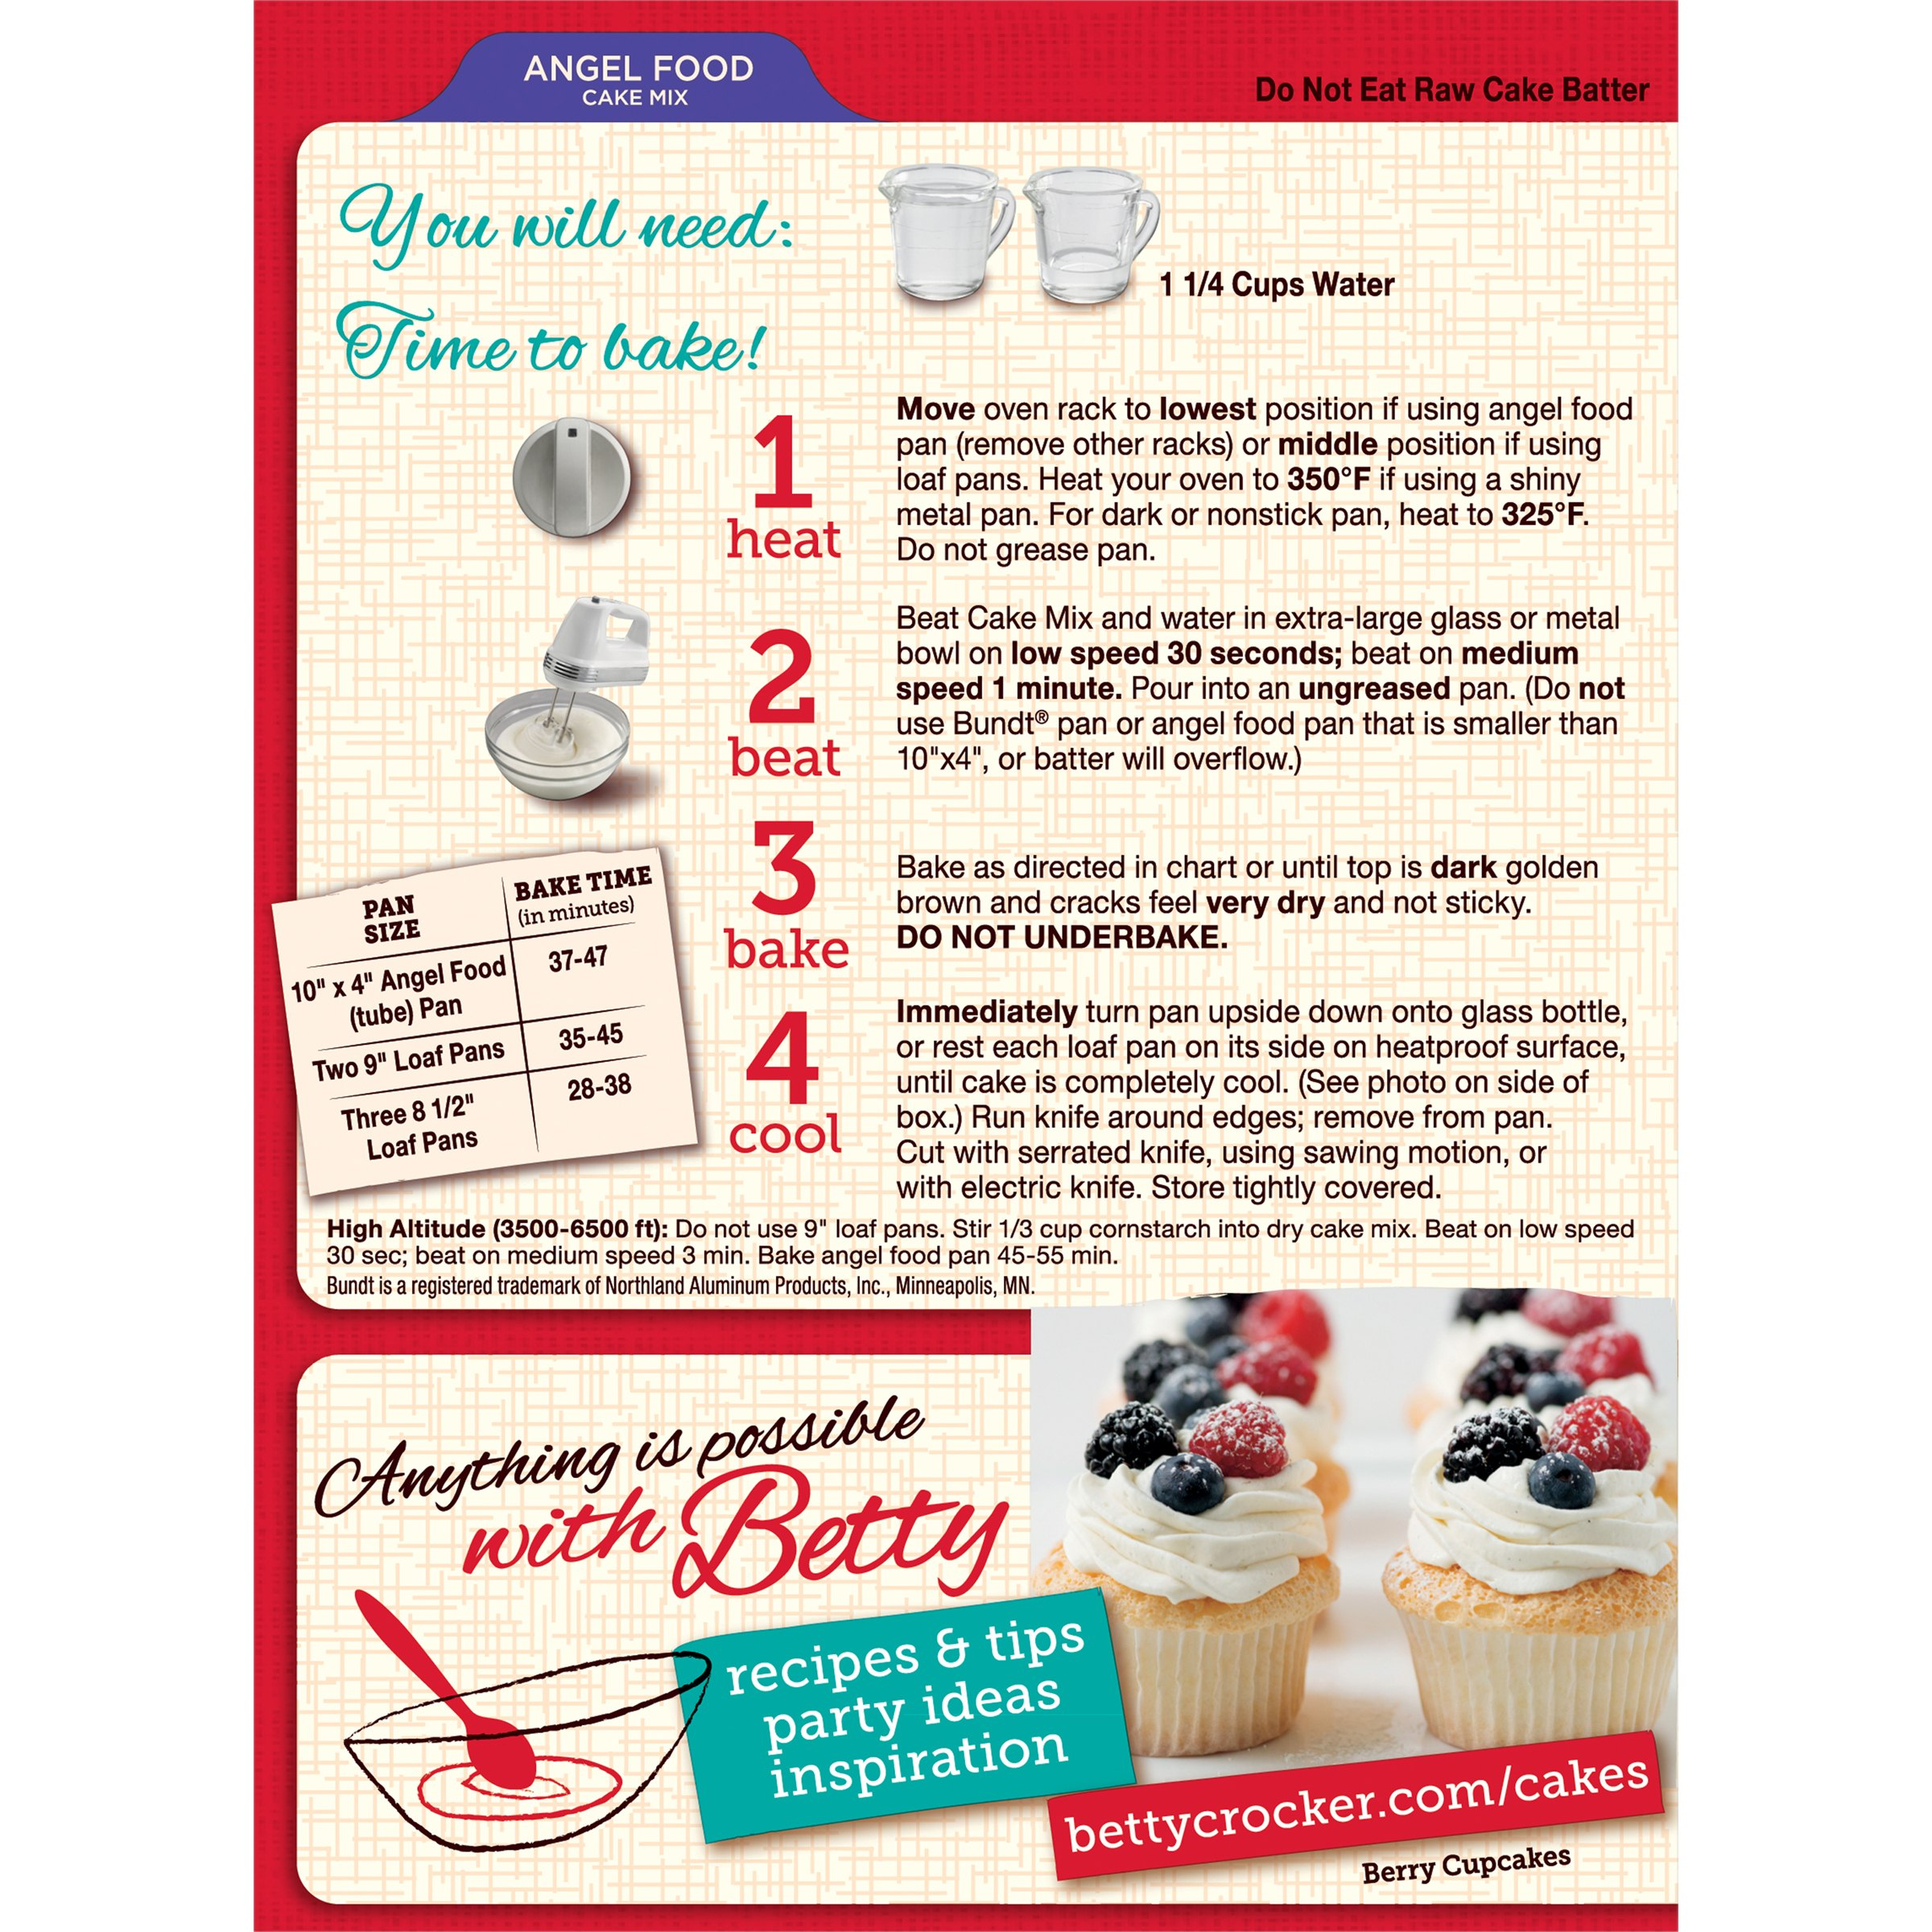 Pillsbury Red Velvet Cake Mix Instructions